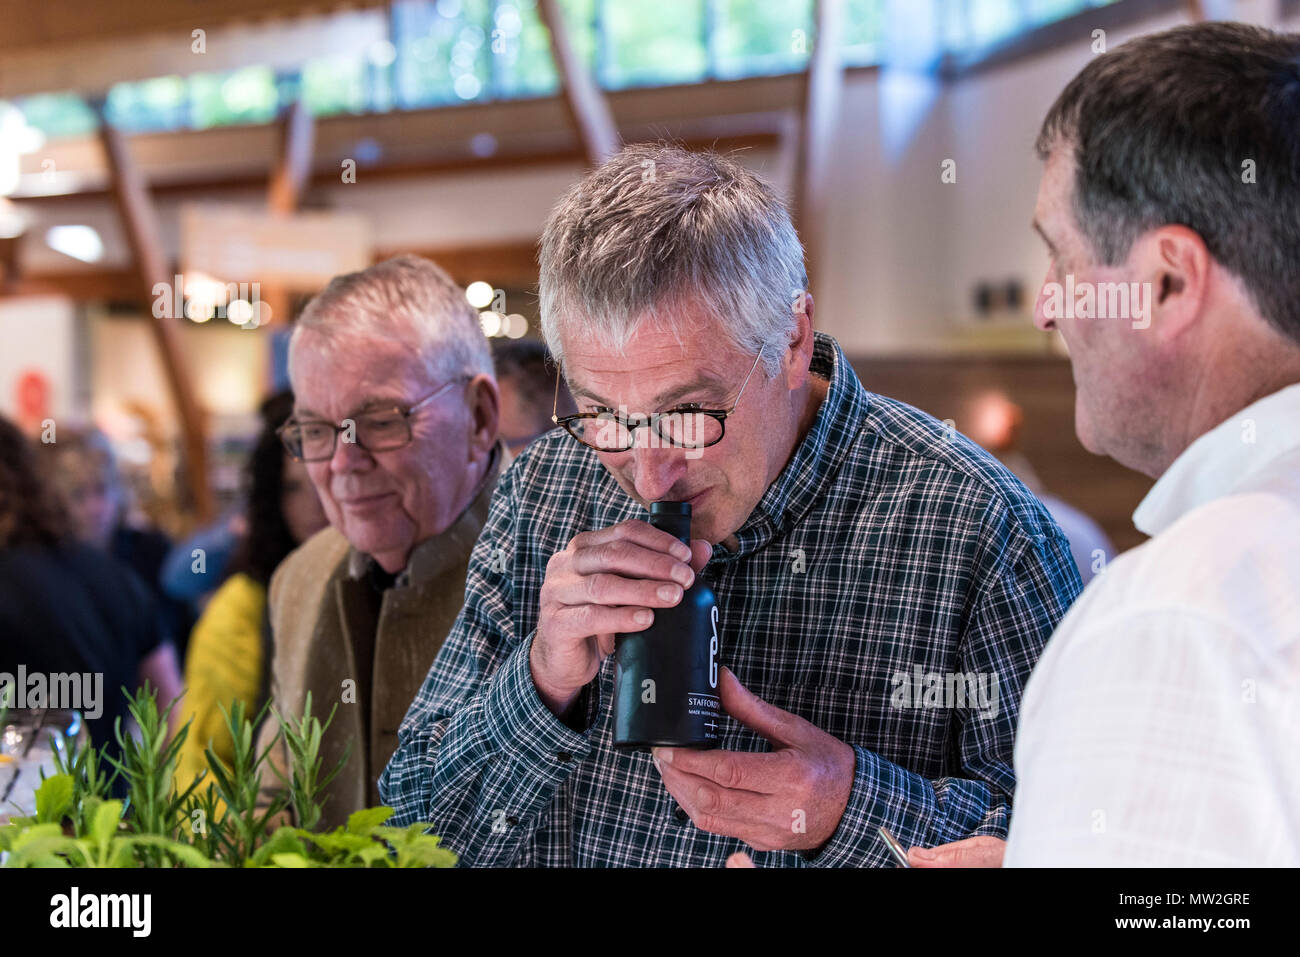 A customer smelling Stafford's Gin at a gin tasting event. - Stock Image